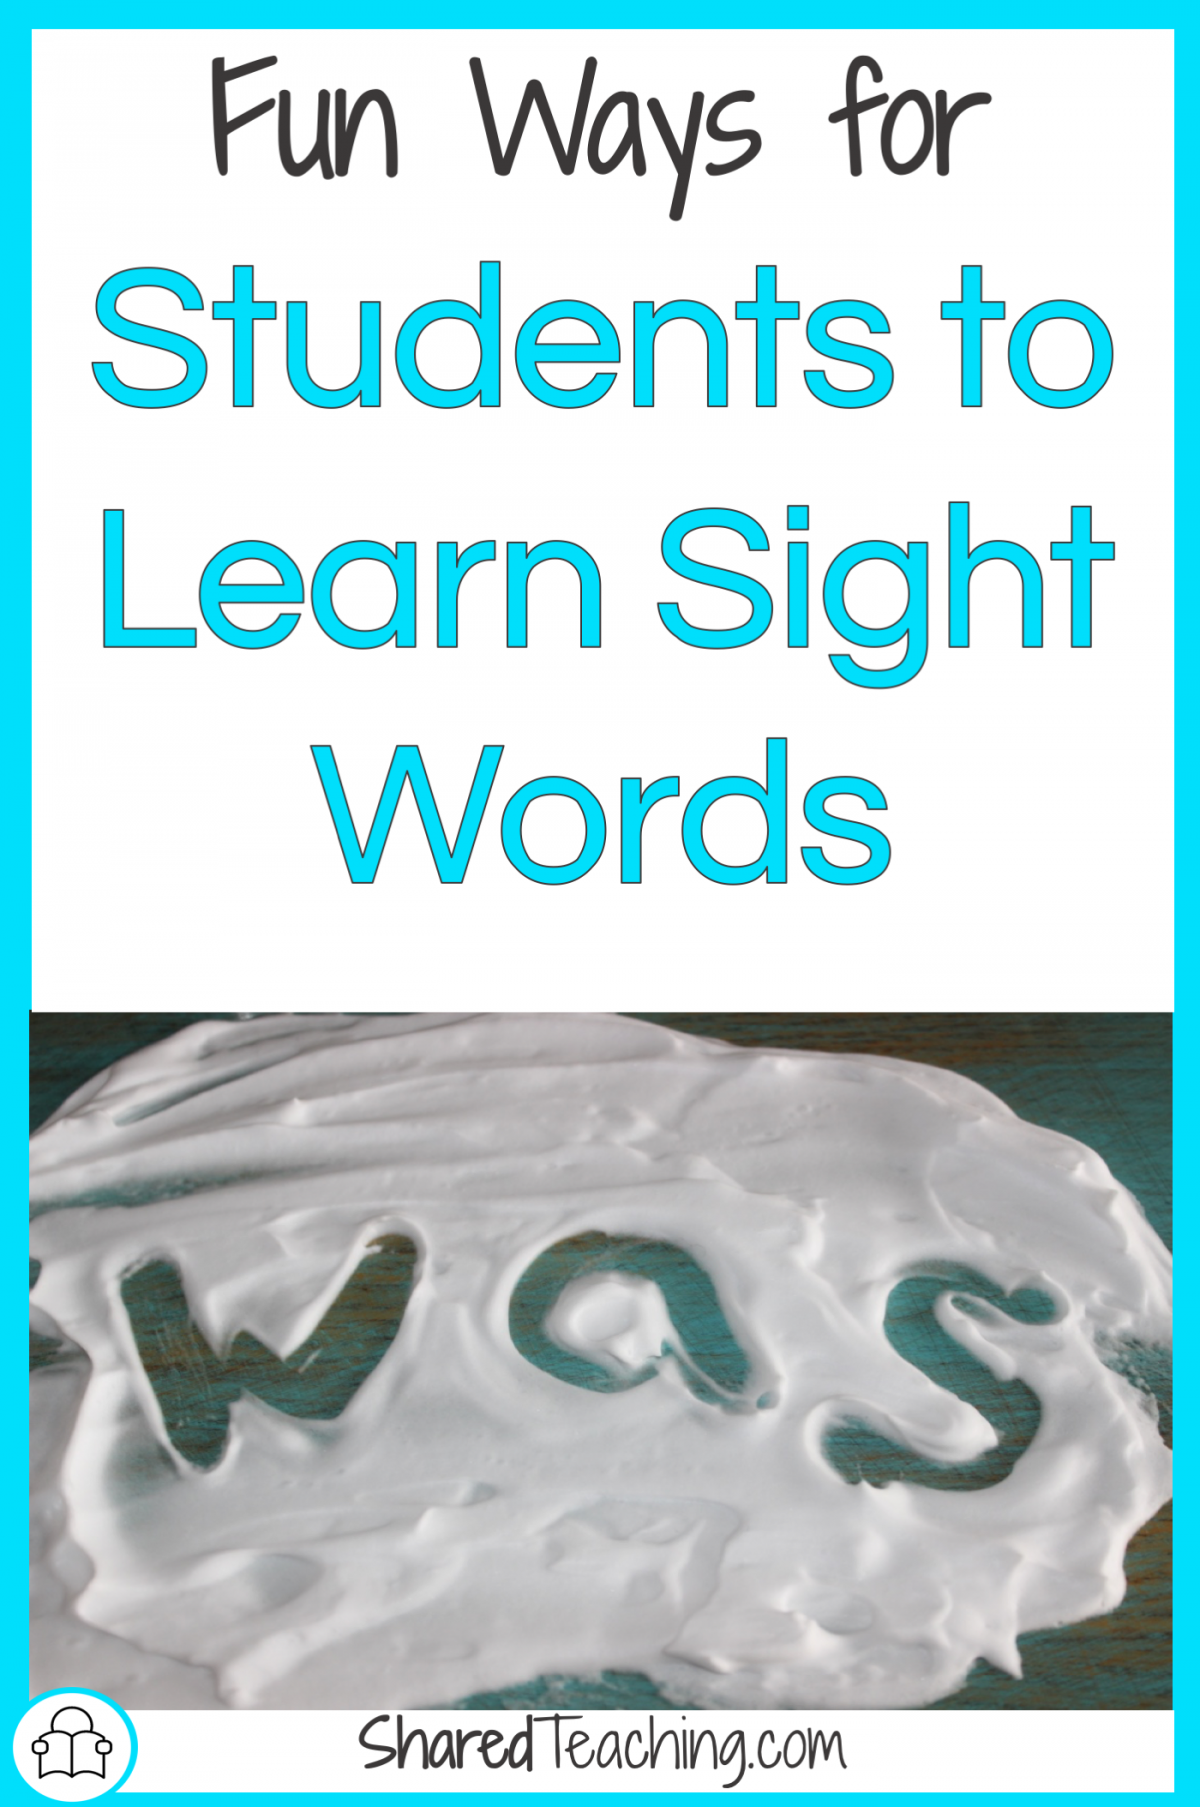 How to learn sight words in a fun way title image